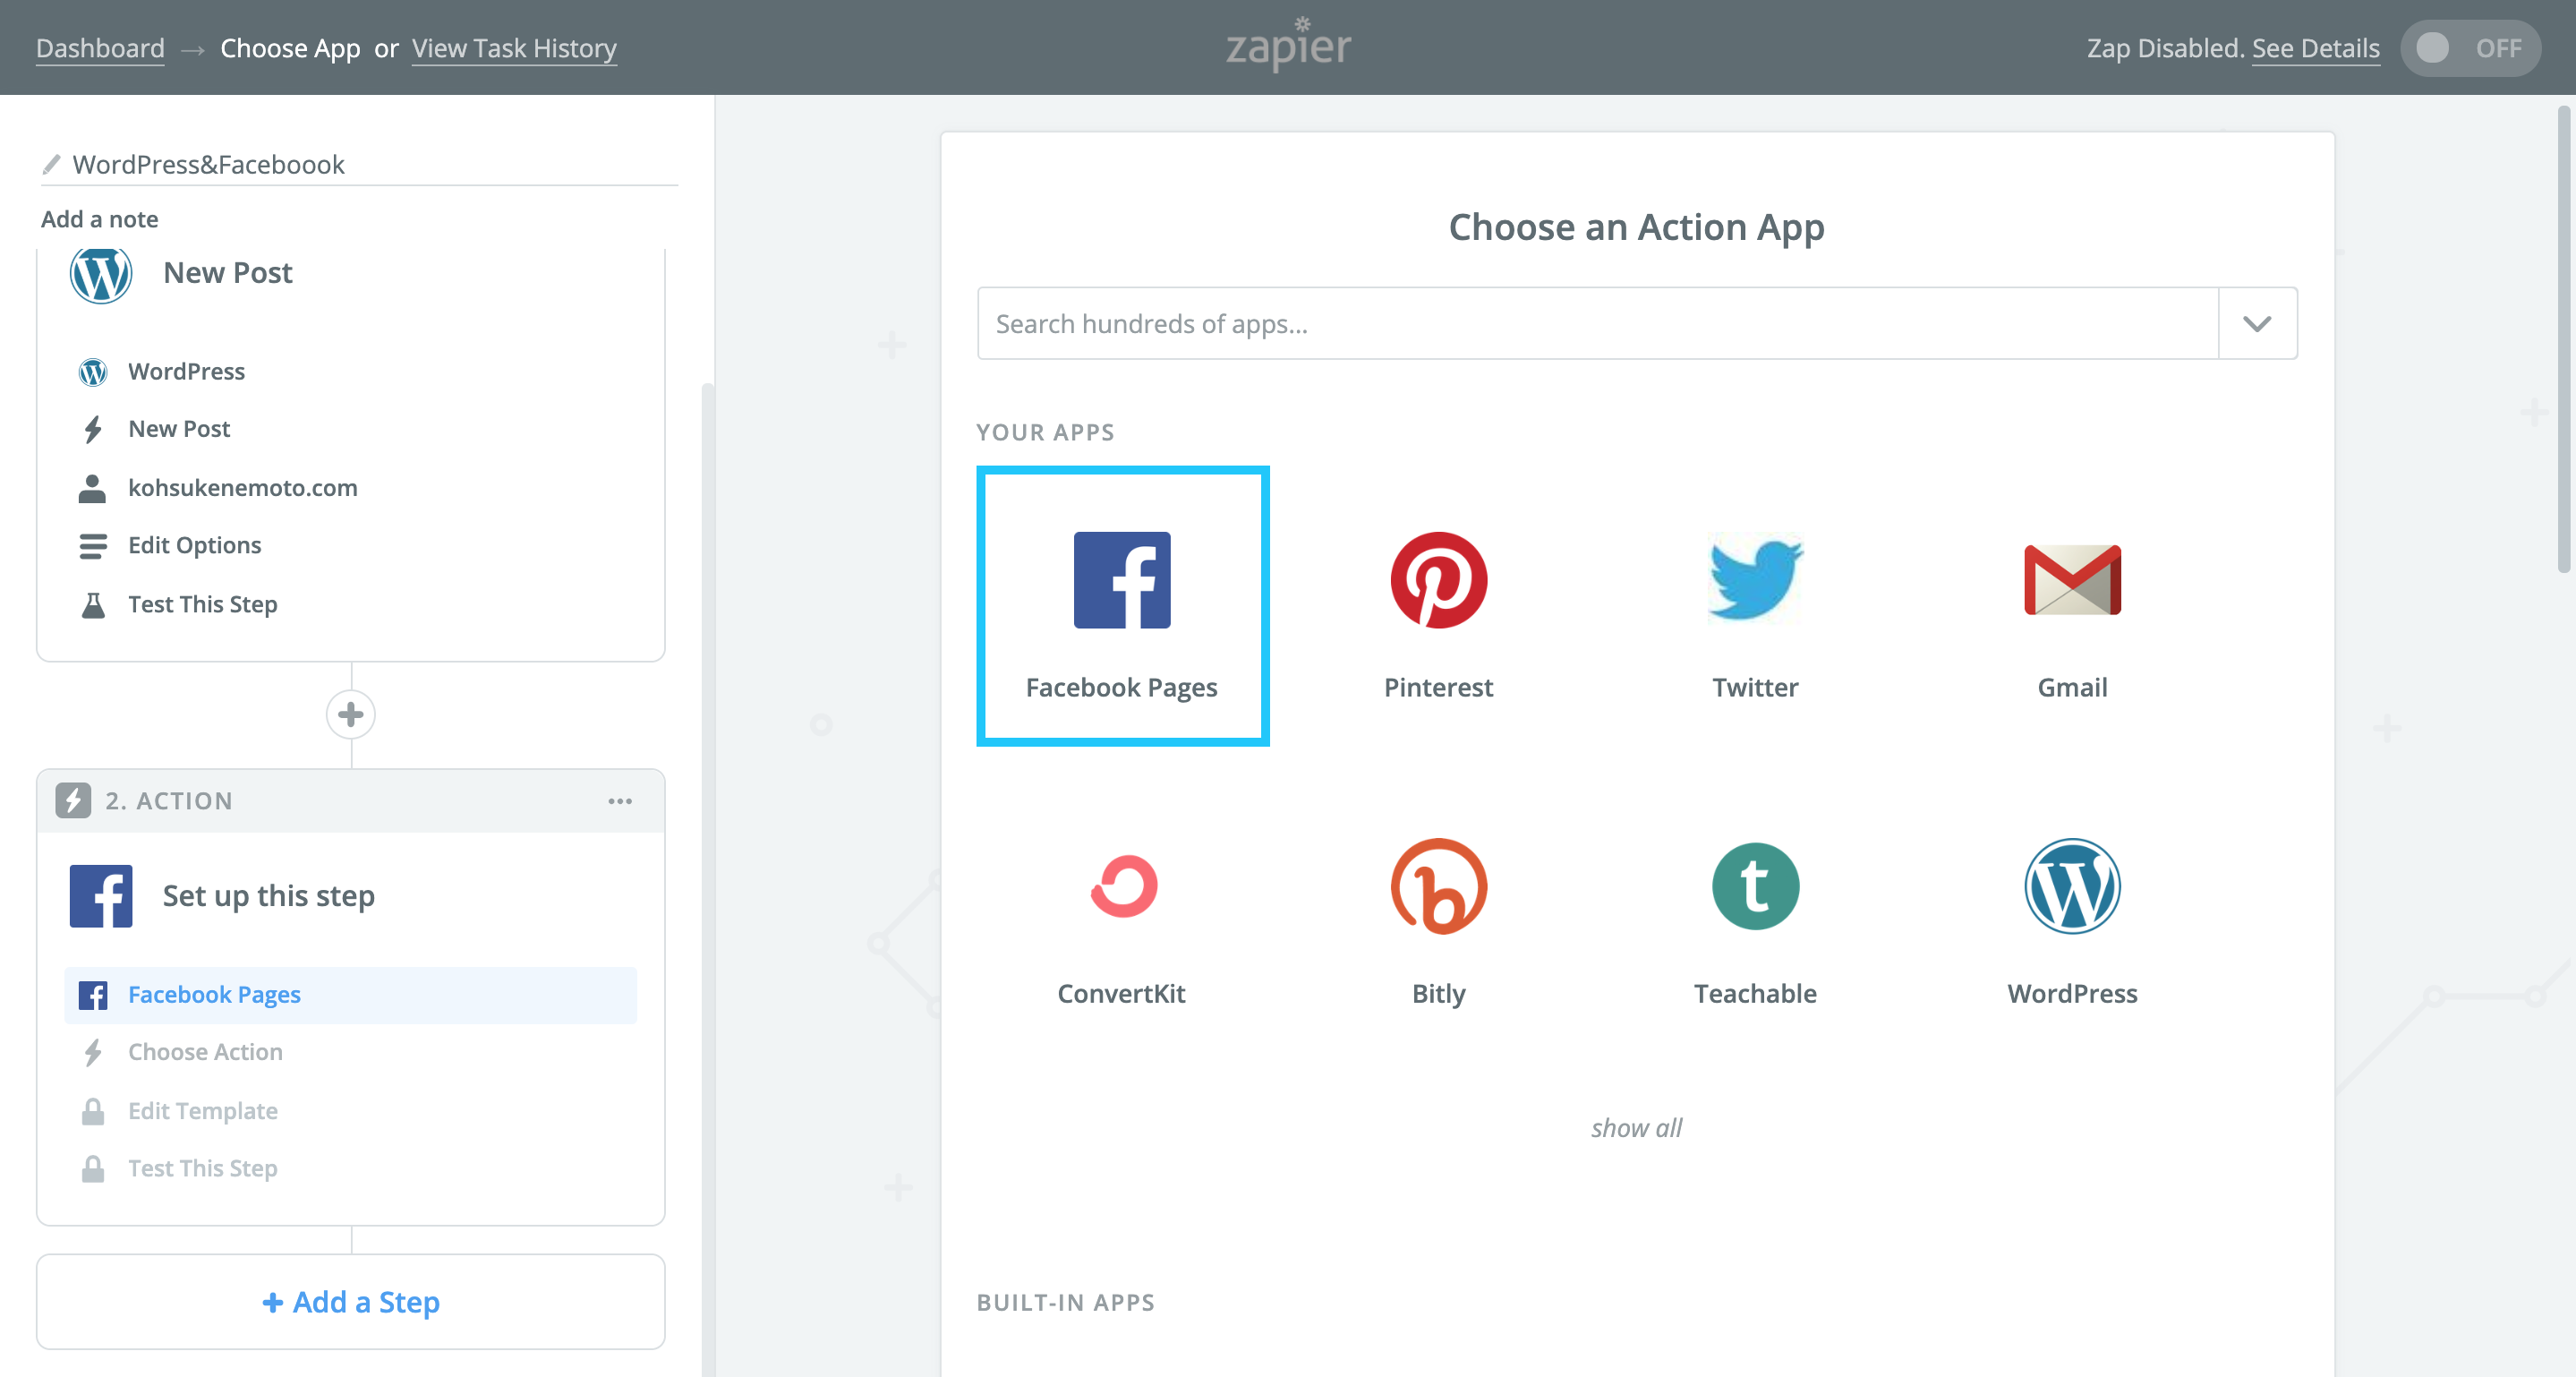 Zapierの「Choose an Action App」で「Facebook Pages」を選択する